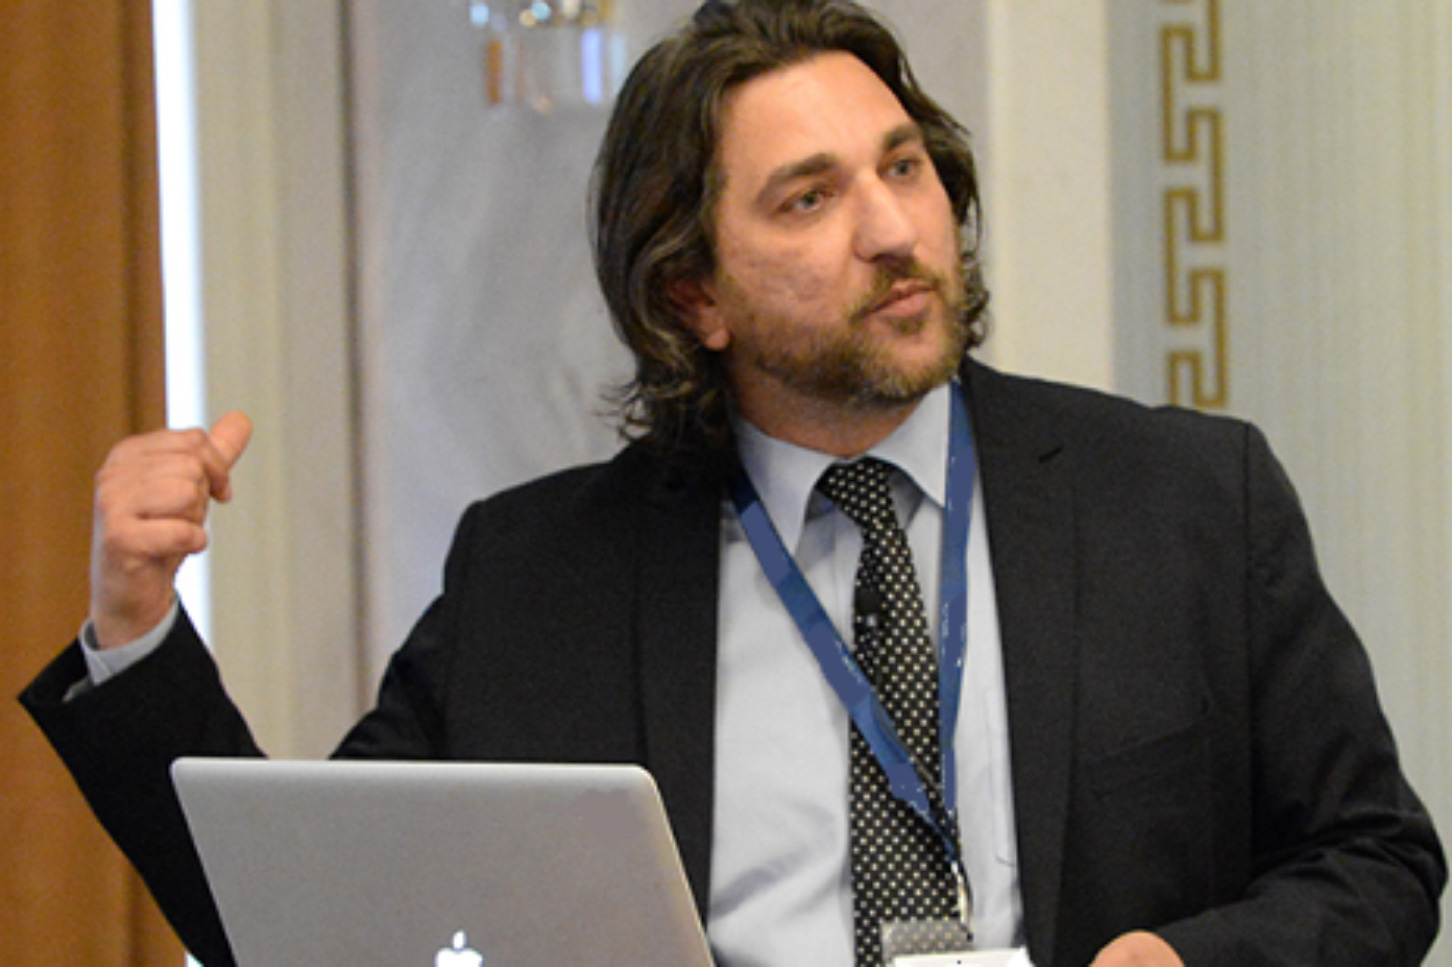 Massimiliano Falcinelli - The thin line between freedom, security and privacy in the Internet era